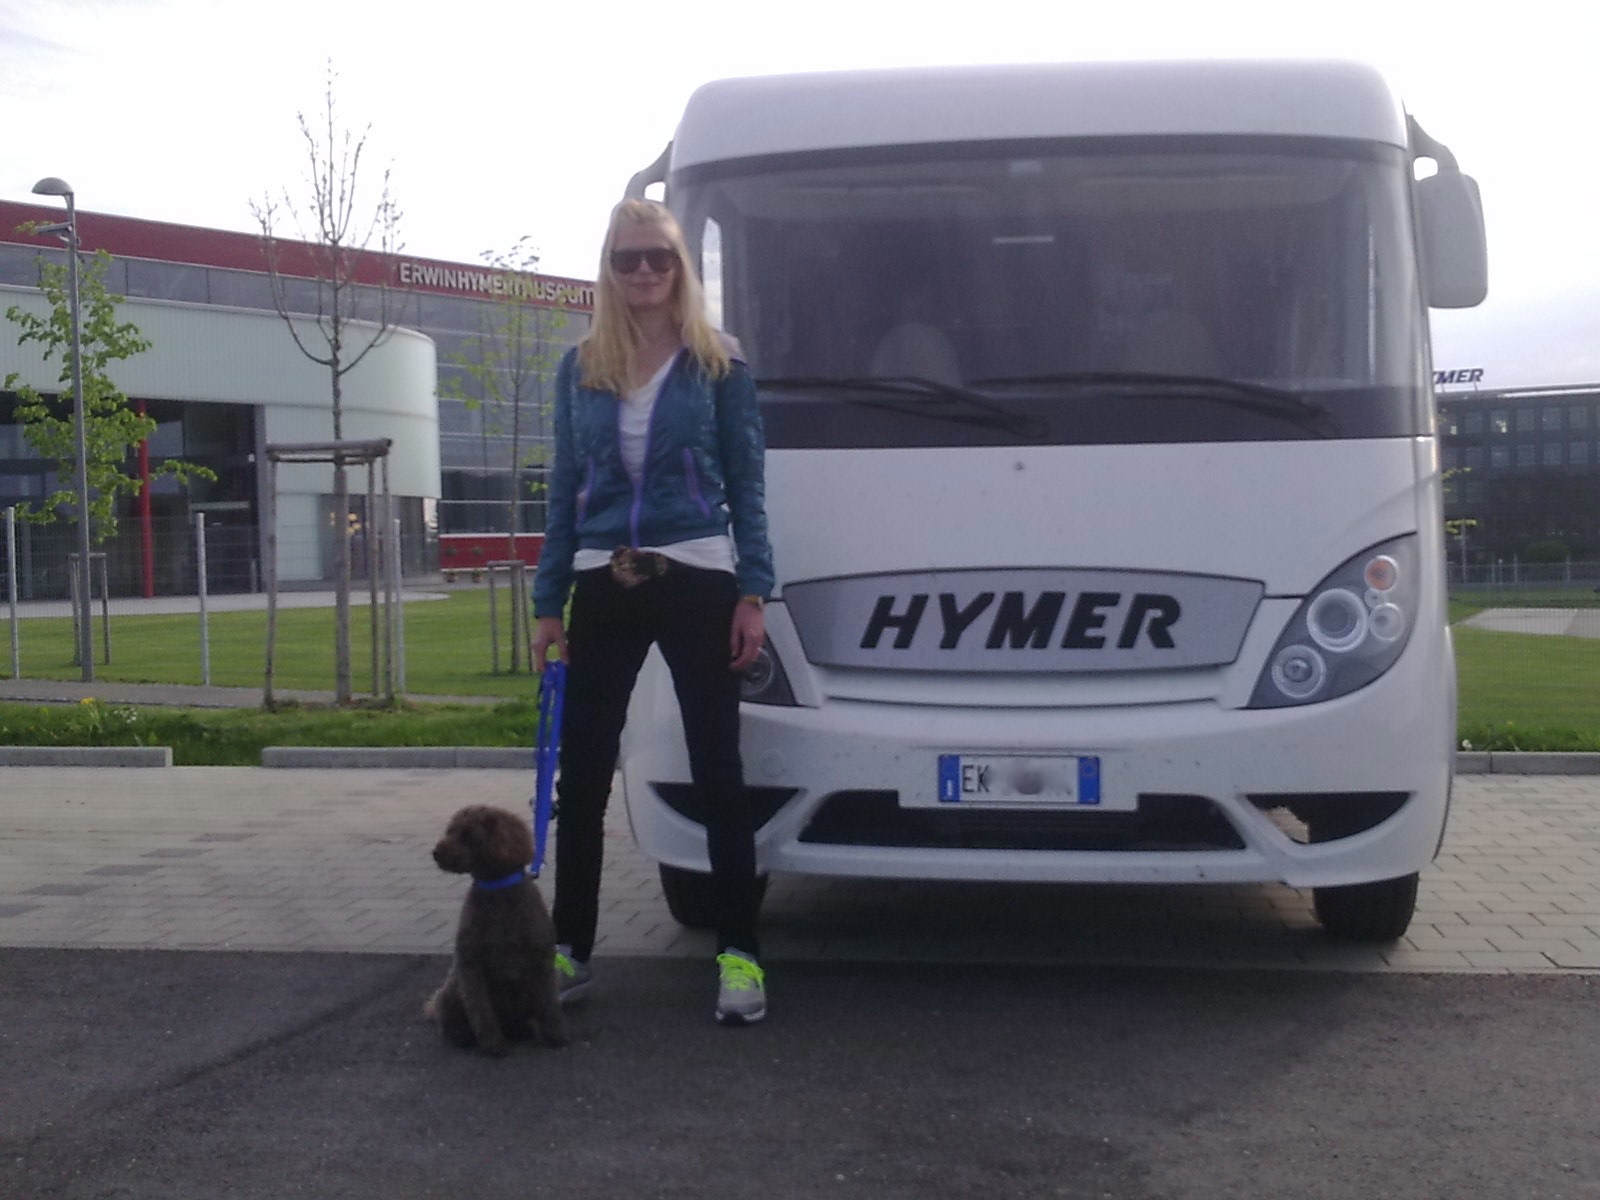 Our first Love! Visiting Hymer museum last year.